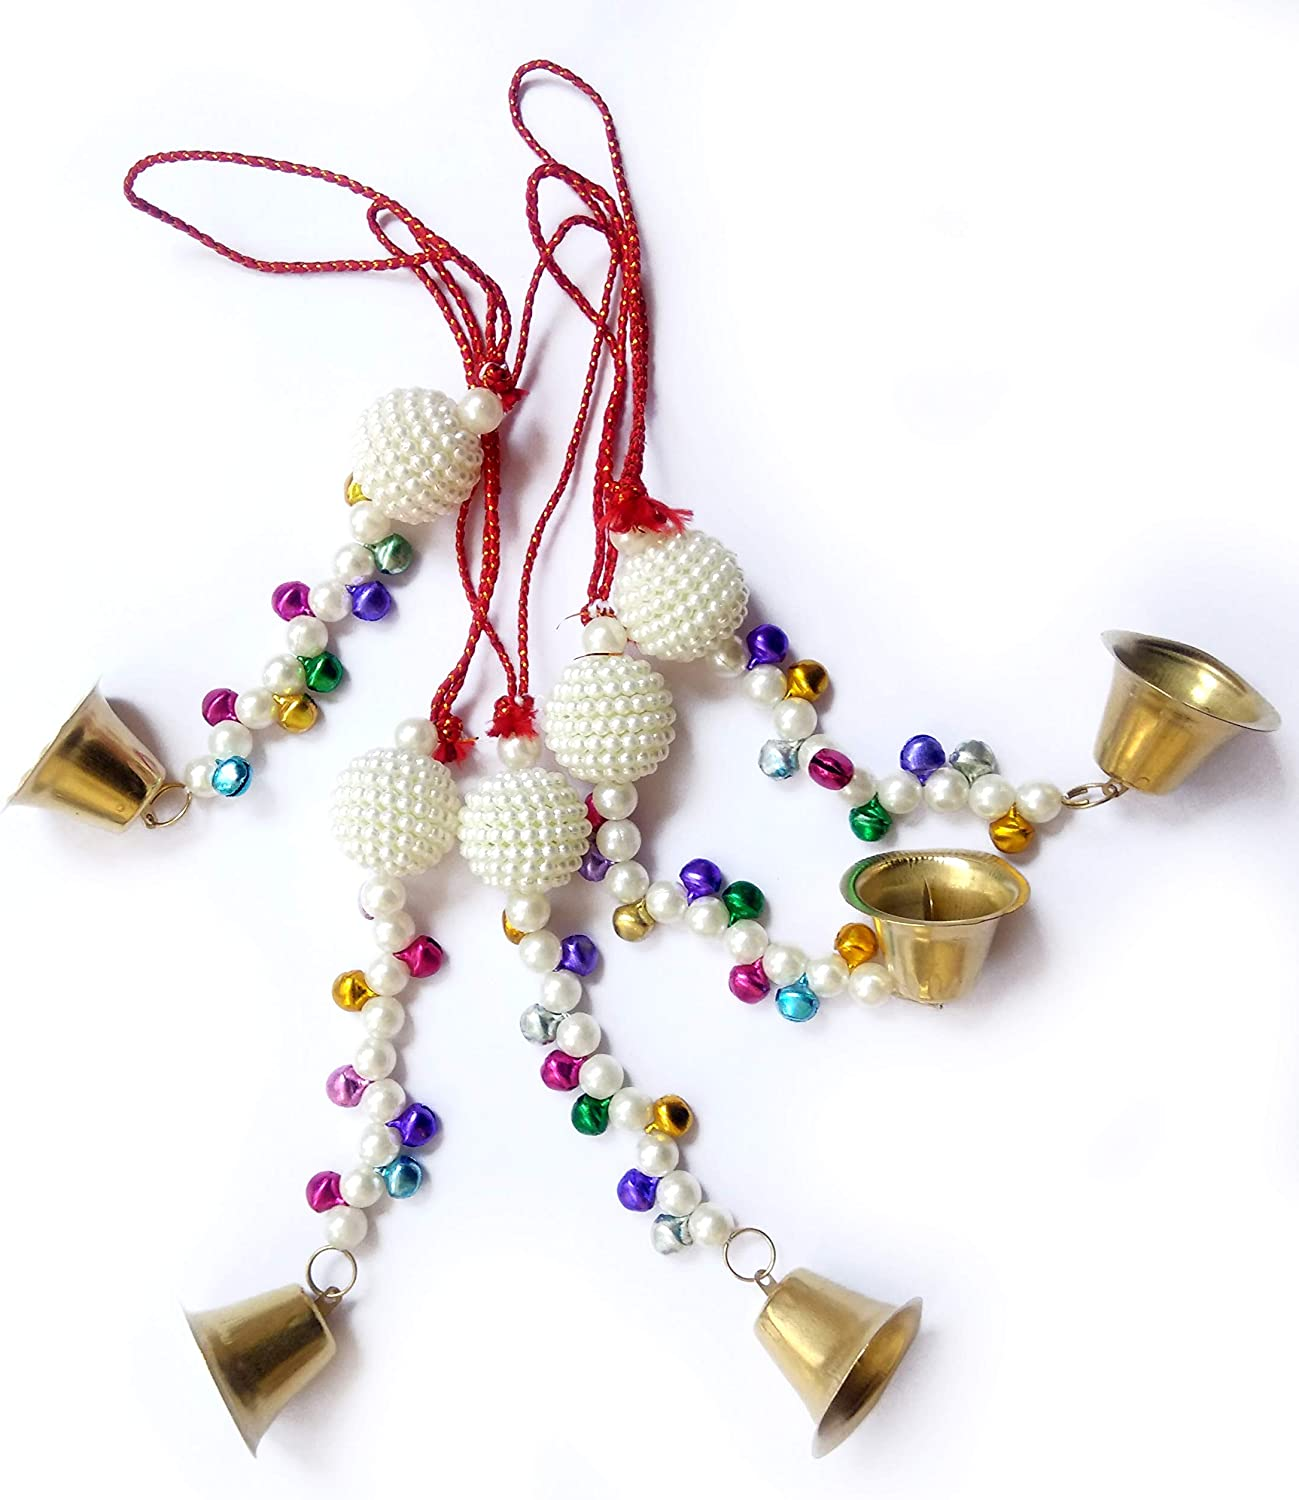 B.C. Wall Hanging Cloth Ring, Umbrella, Beads and Bell Christmas Decor Ornaments Hanging Layers Home Decoration Indian Traditional (White moti Hanging (5))